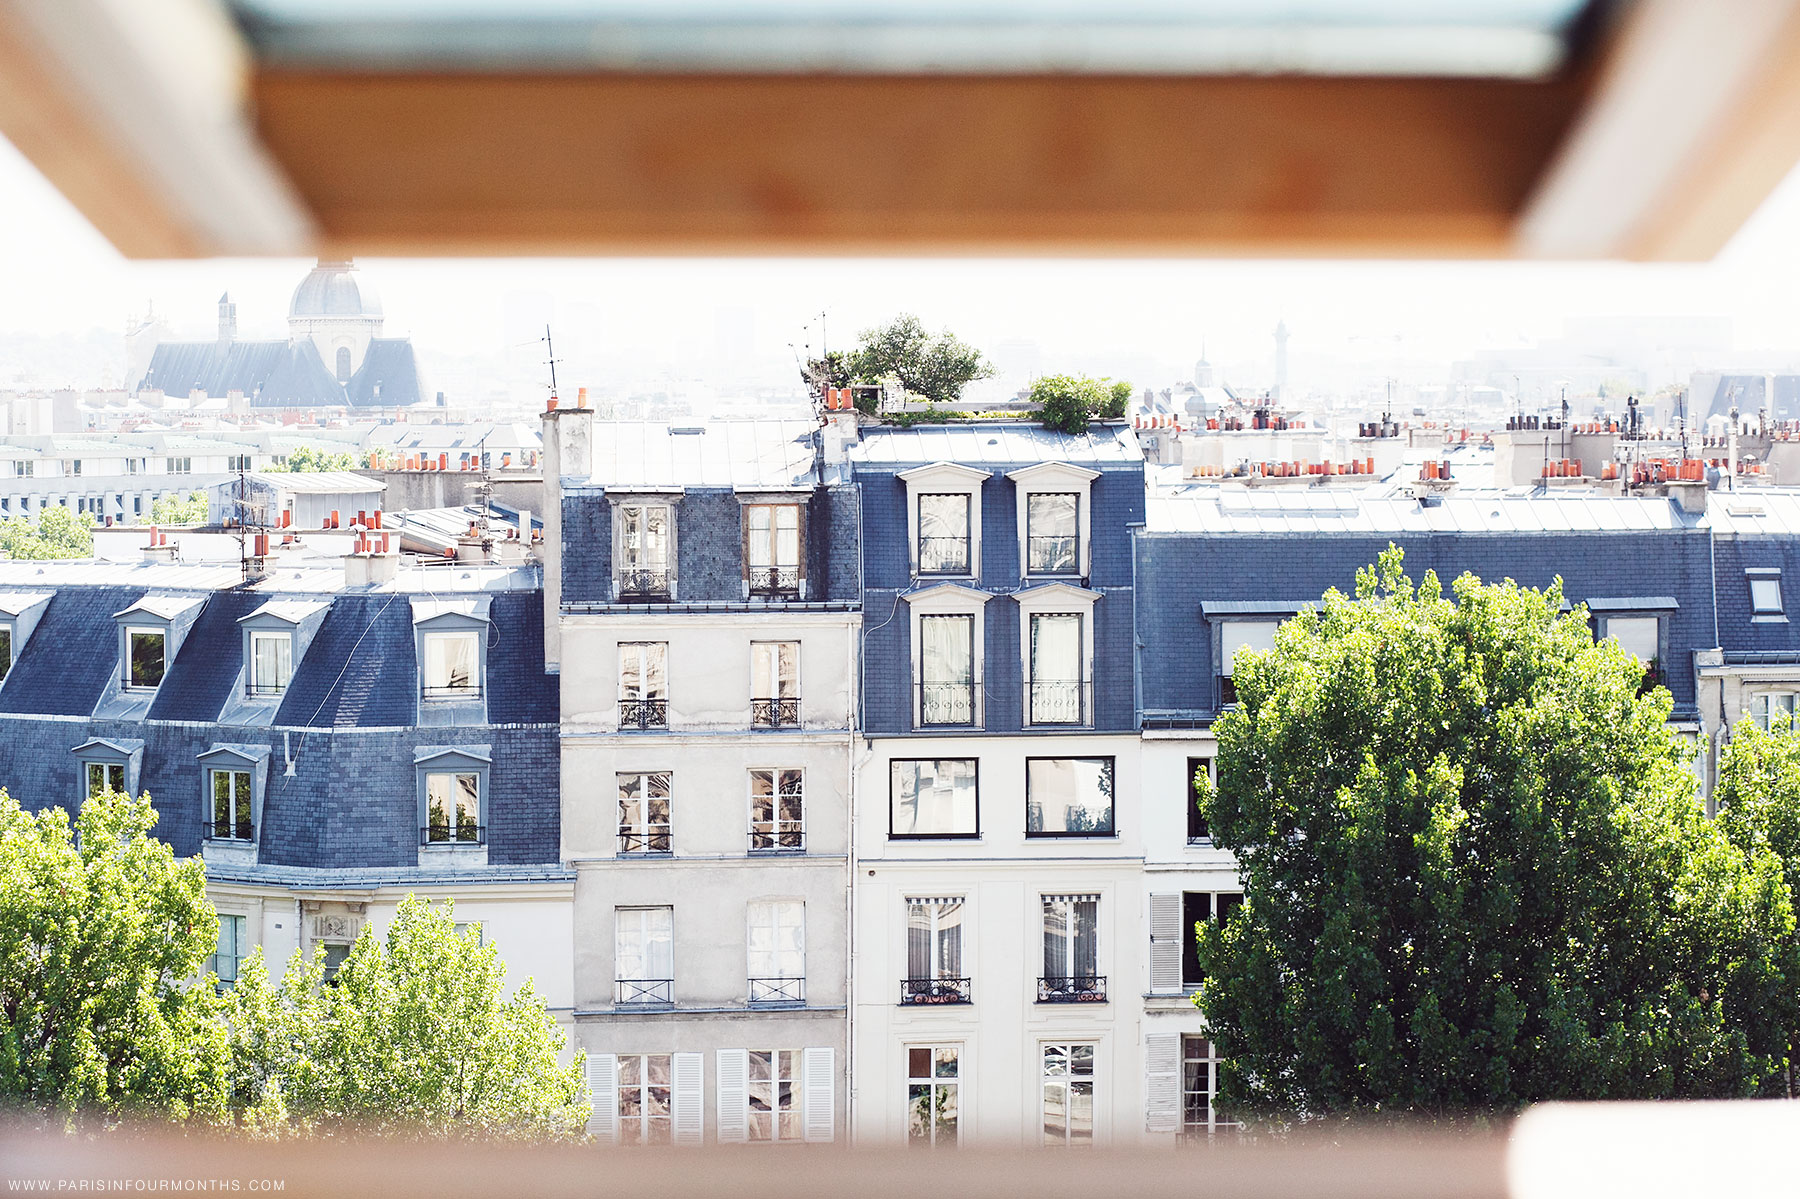 Parisian rooftops by Carin Olsson (Paris in Four Months)